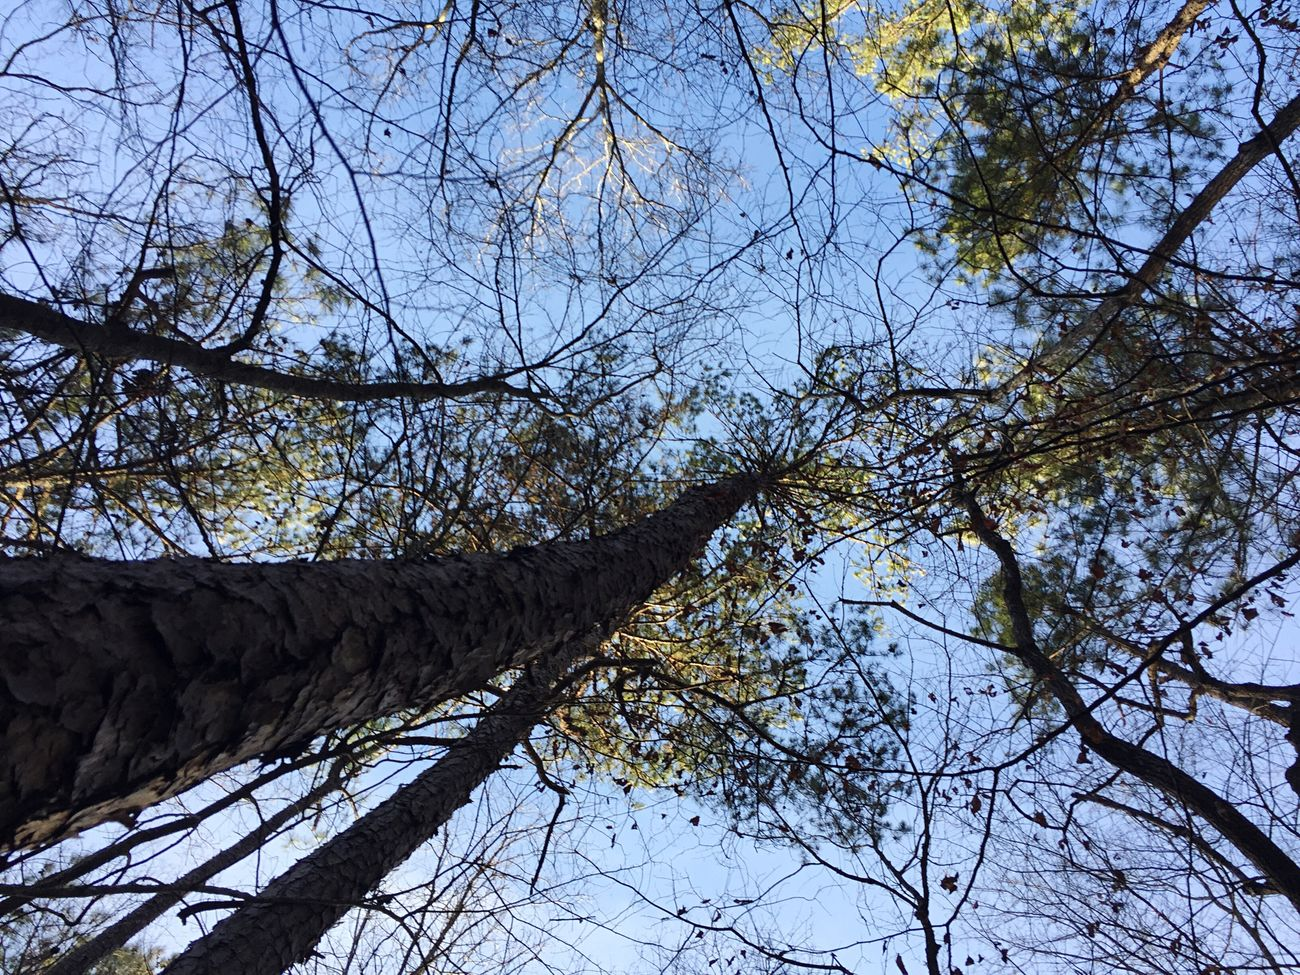 Trees Tree Forest Low Angle View Branch Nature Bare Tree Growth Outdoors Beauty In Nature Sky Day No People Garden Botanical Gardens Hike Hiking